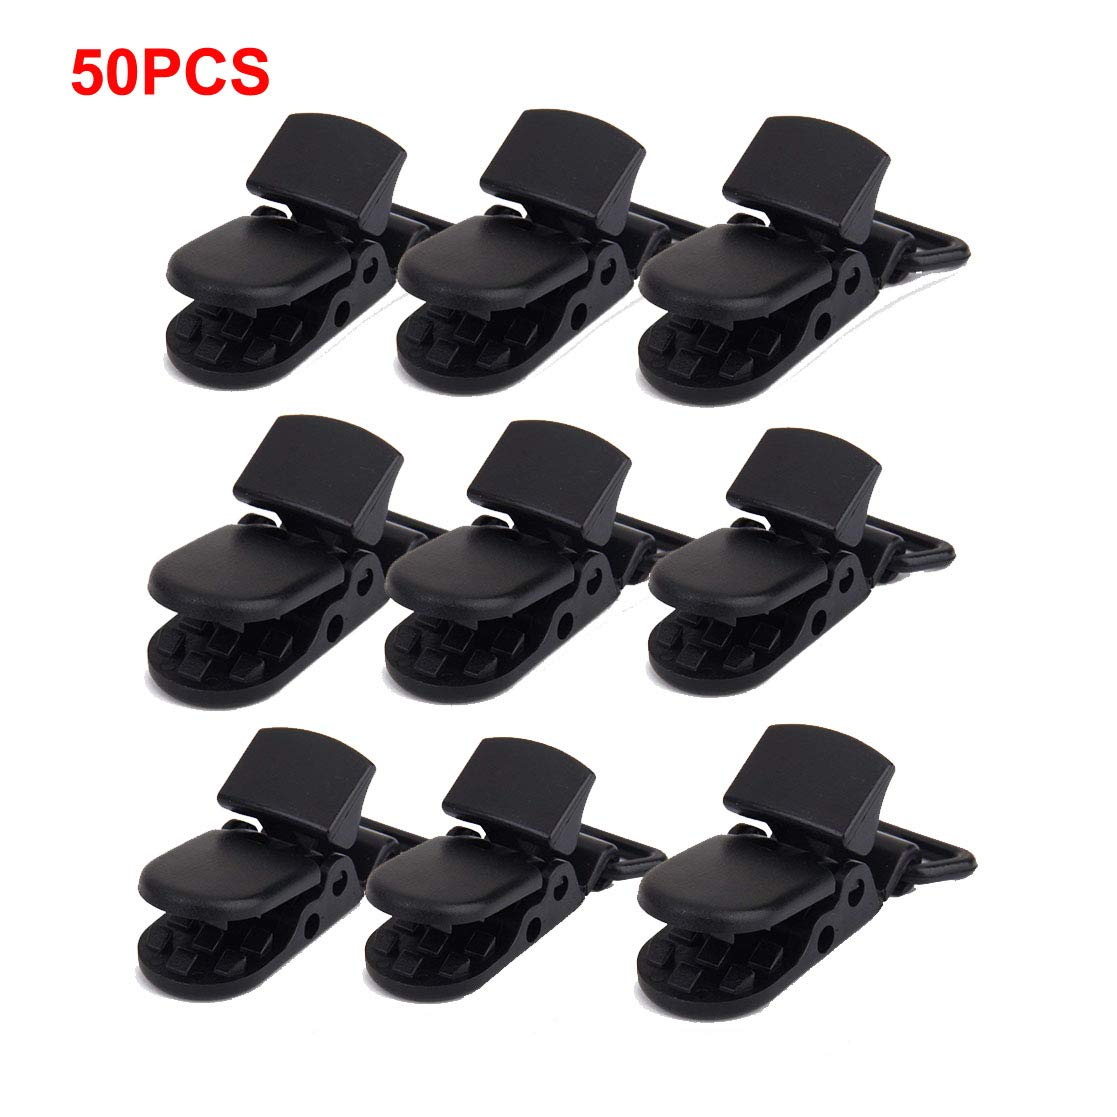 Black Pacifier Clips Soother Clips Suspender Clips Plastic Baby Dummy Pacifier Clip 50pcs T-shape Badge Clips Bib Holders